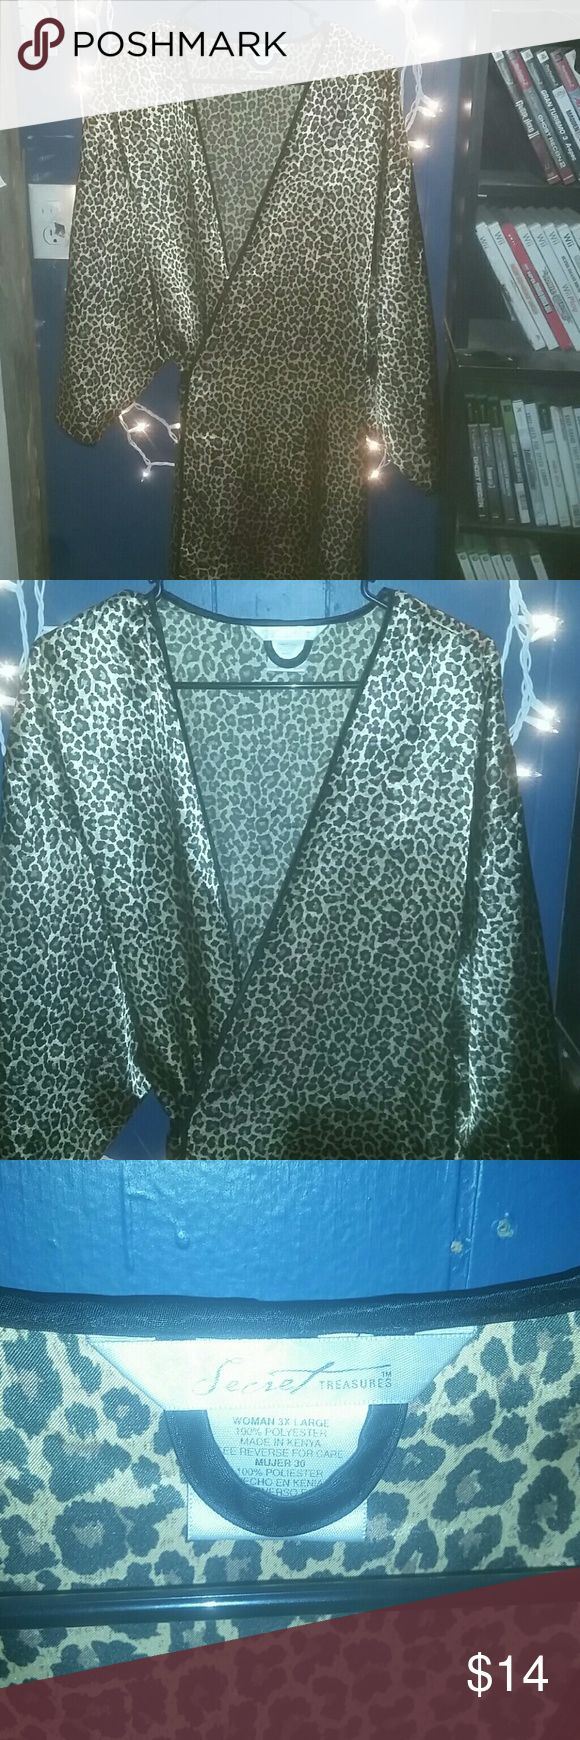 Cheetah print robe I used this mainly to cut hair when I was in hair school. My ladies loved it.   Size is a 3XL fits a large also  It's really used for you to walk around the house in, or when you go to bed    Never worn or used by me, only for hair.   In very good condition, very very clean.  No signs of wear or tear.   Same day shipping if bought before 5! secret treasures  Intimates & Sleepwear Chemises & Slips